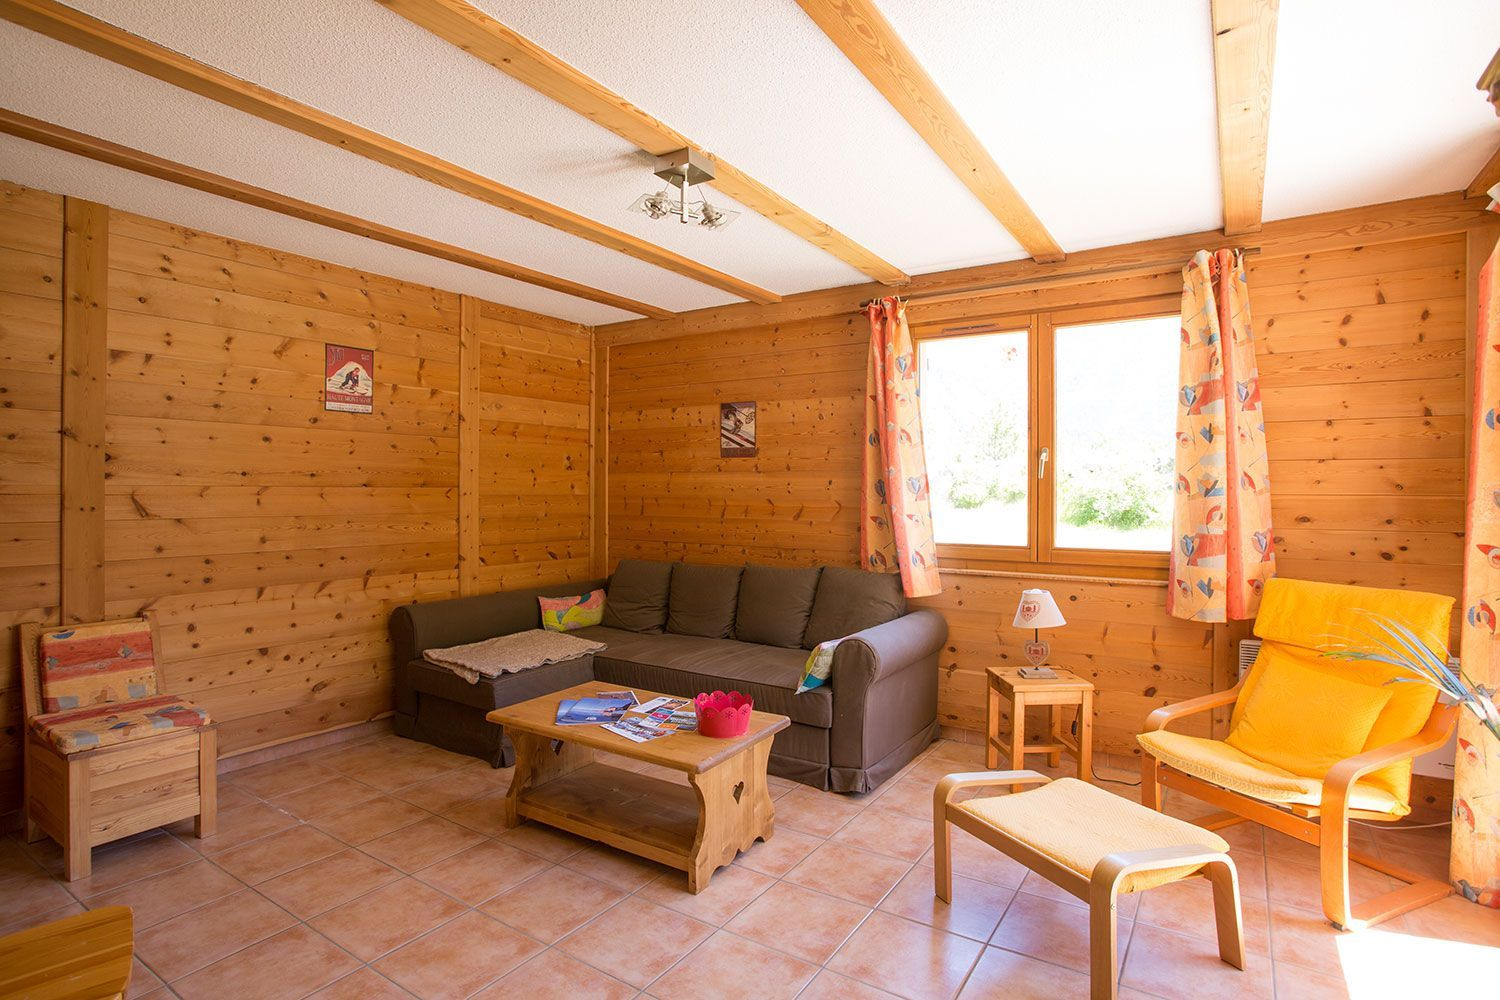 location-chalet-meuble-claree-nevache-salon